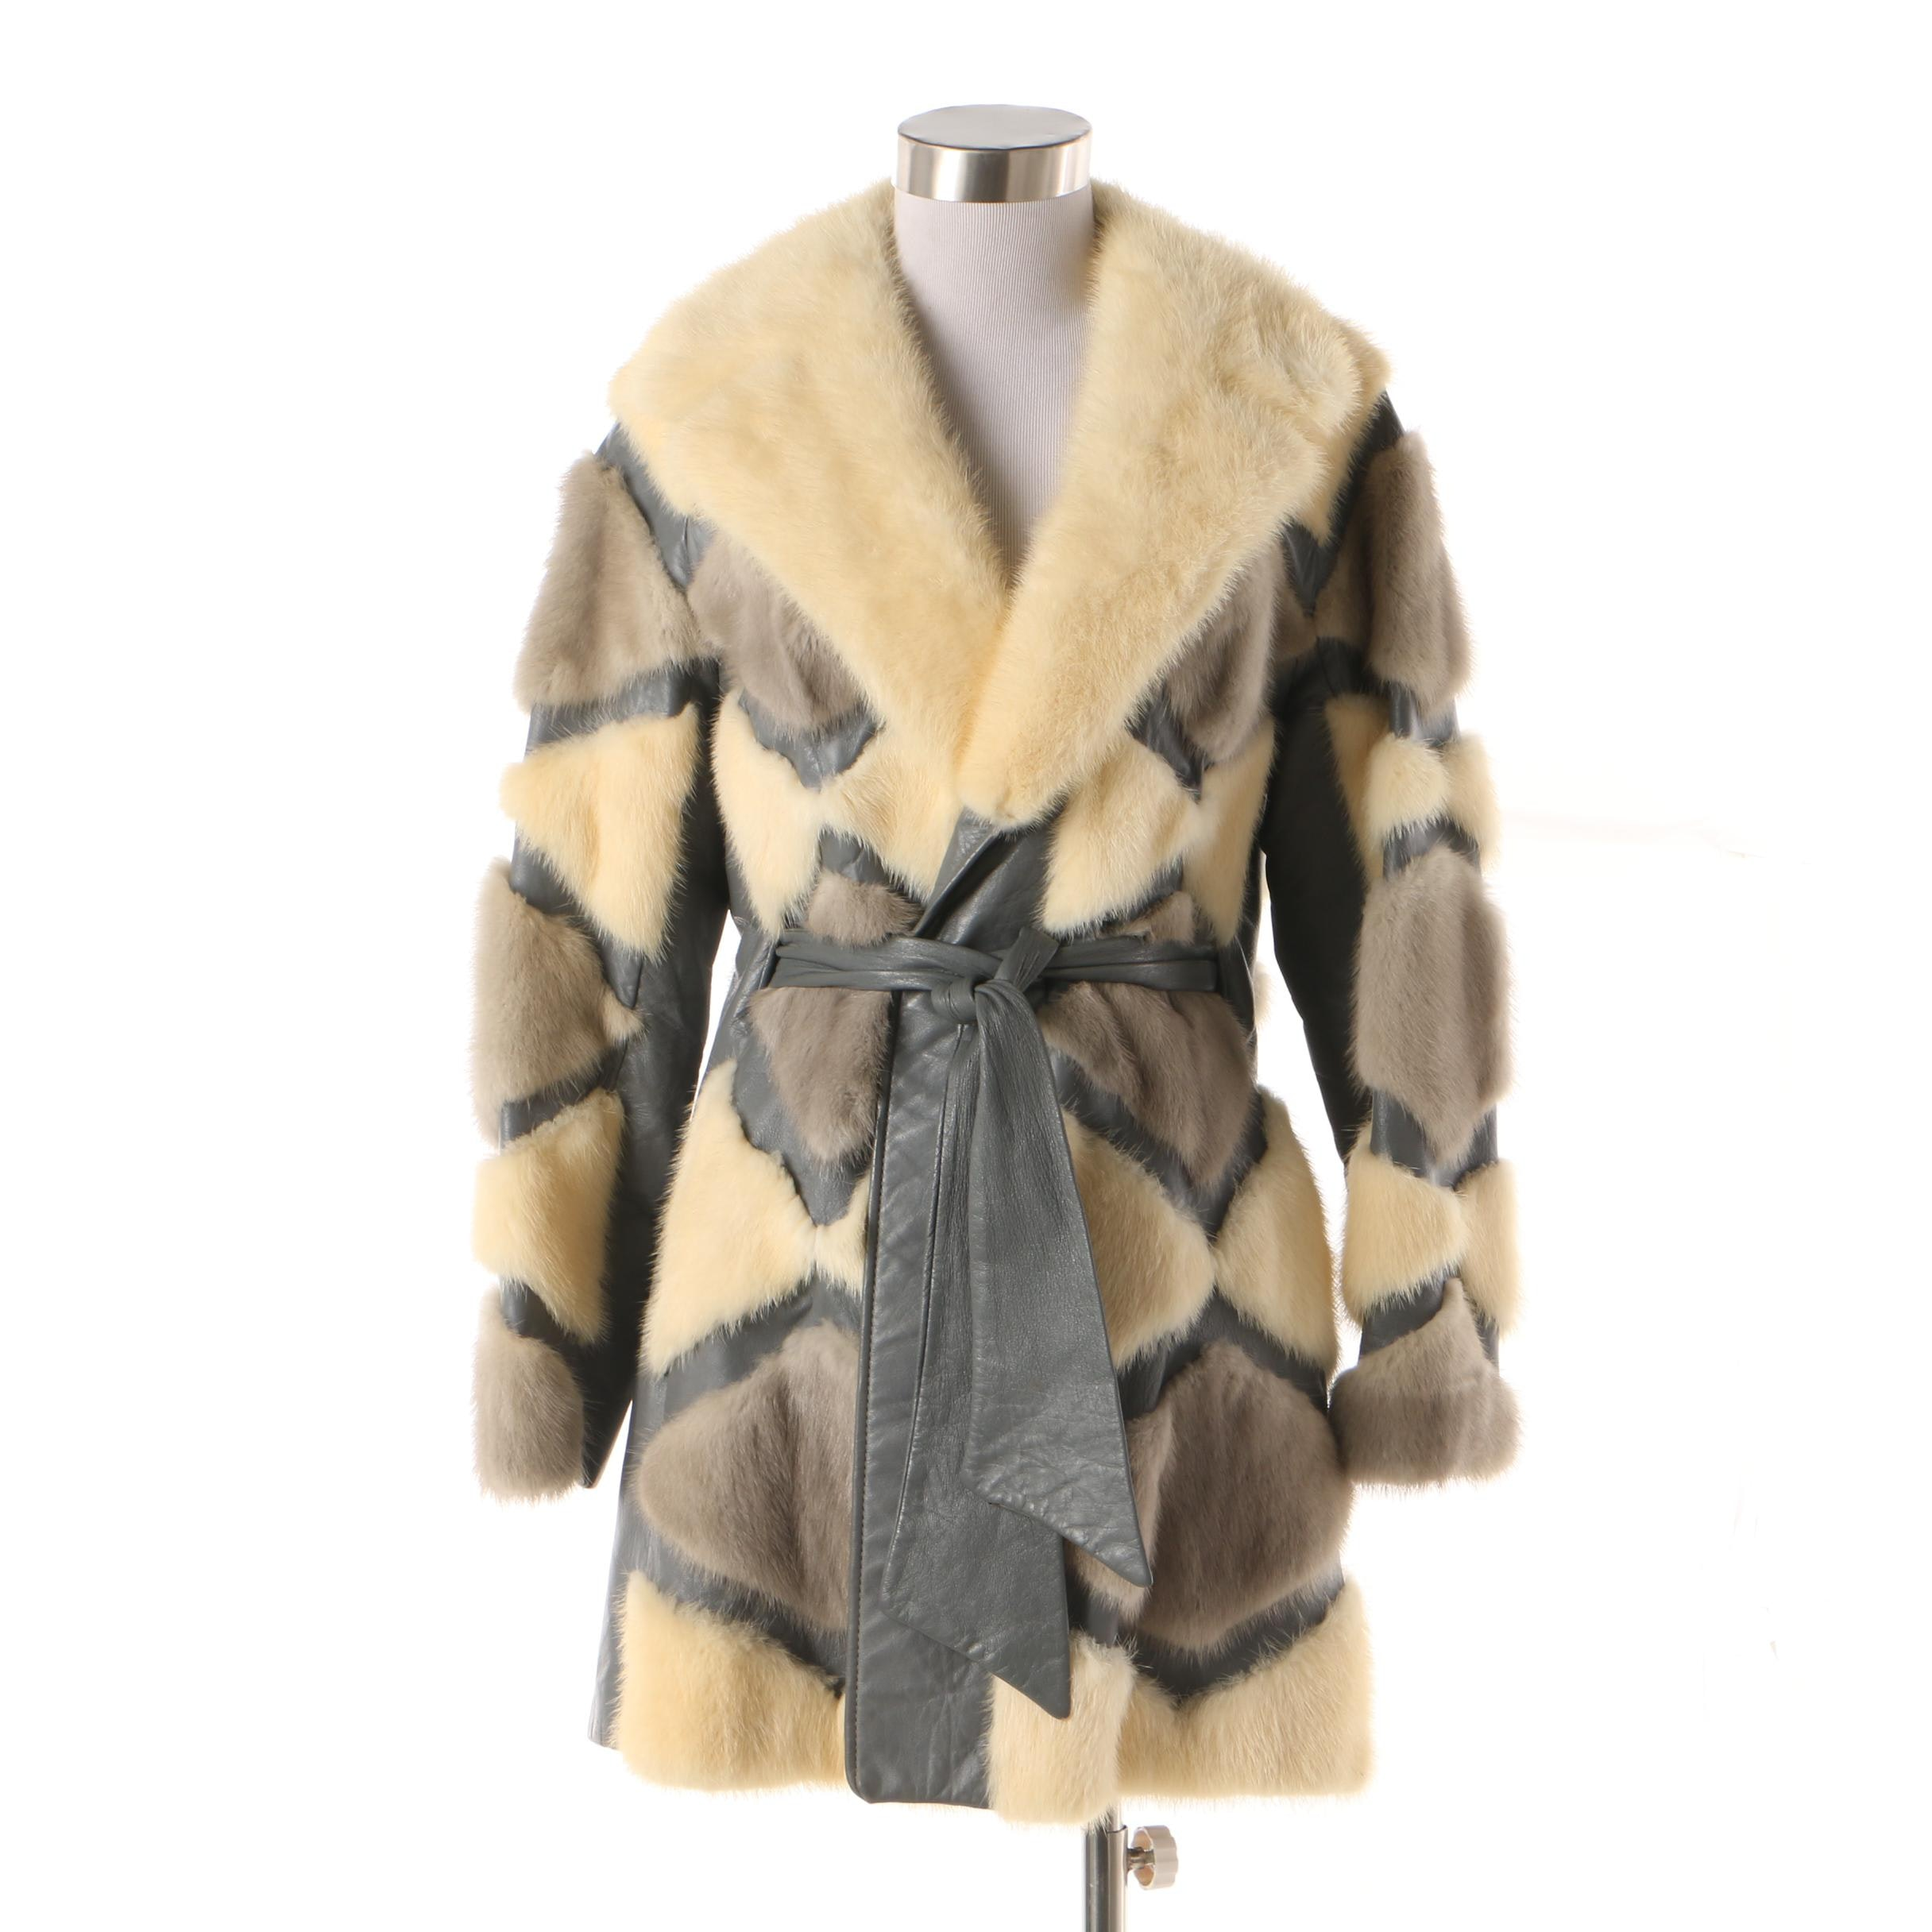 Vintage Cohen's Furs Grey and Blonde Pieced Mink Fur and Leather Wrap Jacket